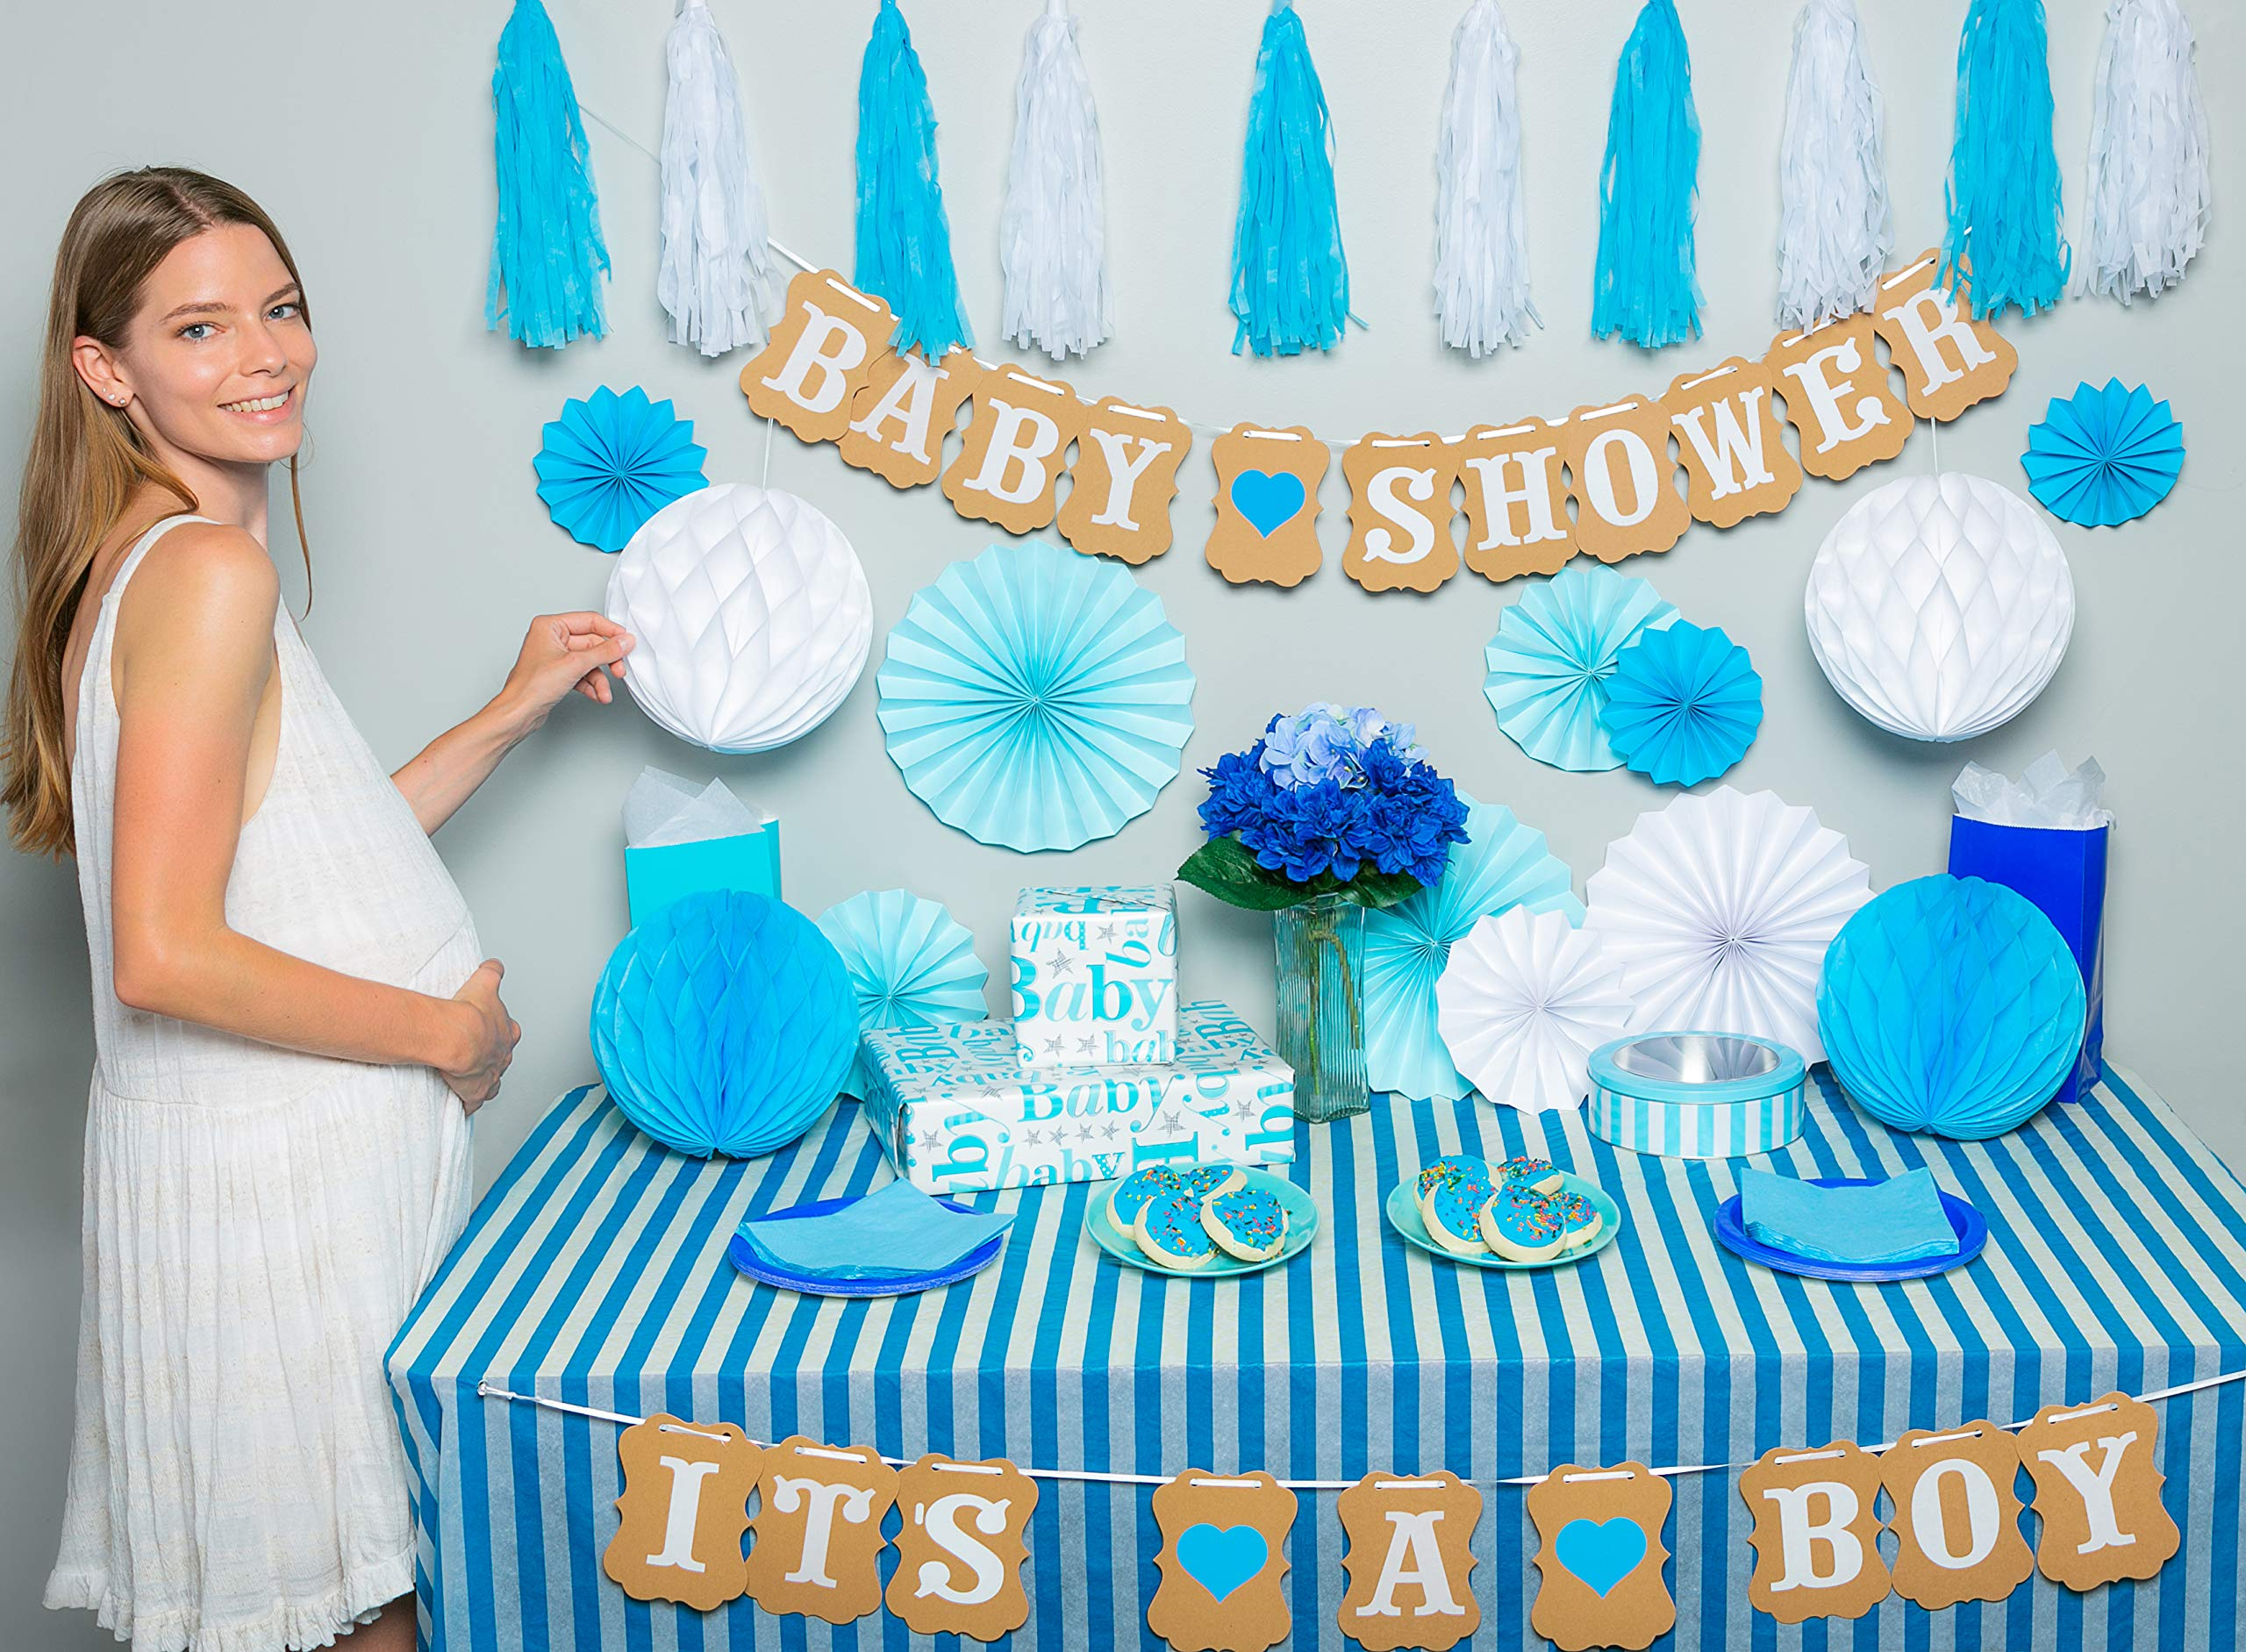 Premium baby shower decorations for boy Kit | It's a boy baby shower decorations with striped tablecloth, 2 banners, paper fans, and honeycomb balls | complete baby shower set for a beautiful baby boy by TeeMoo (Image #1)